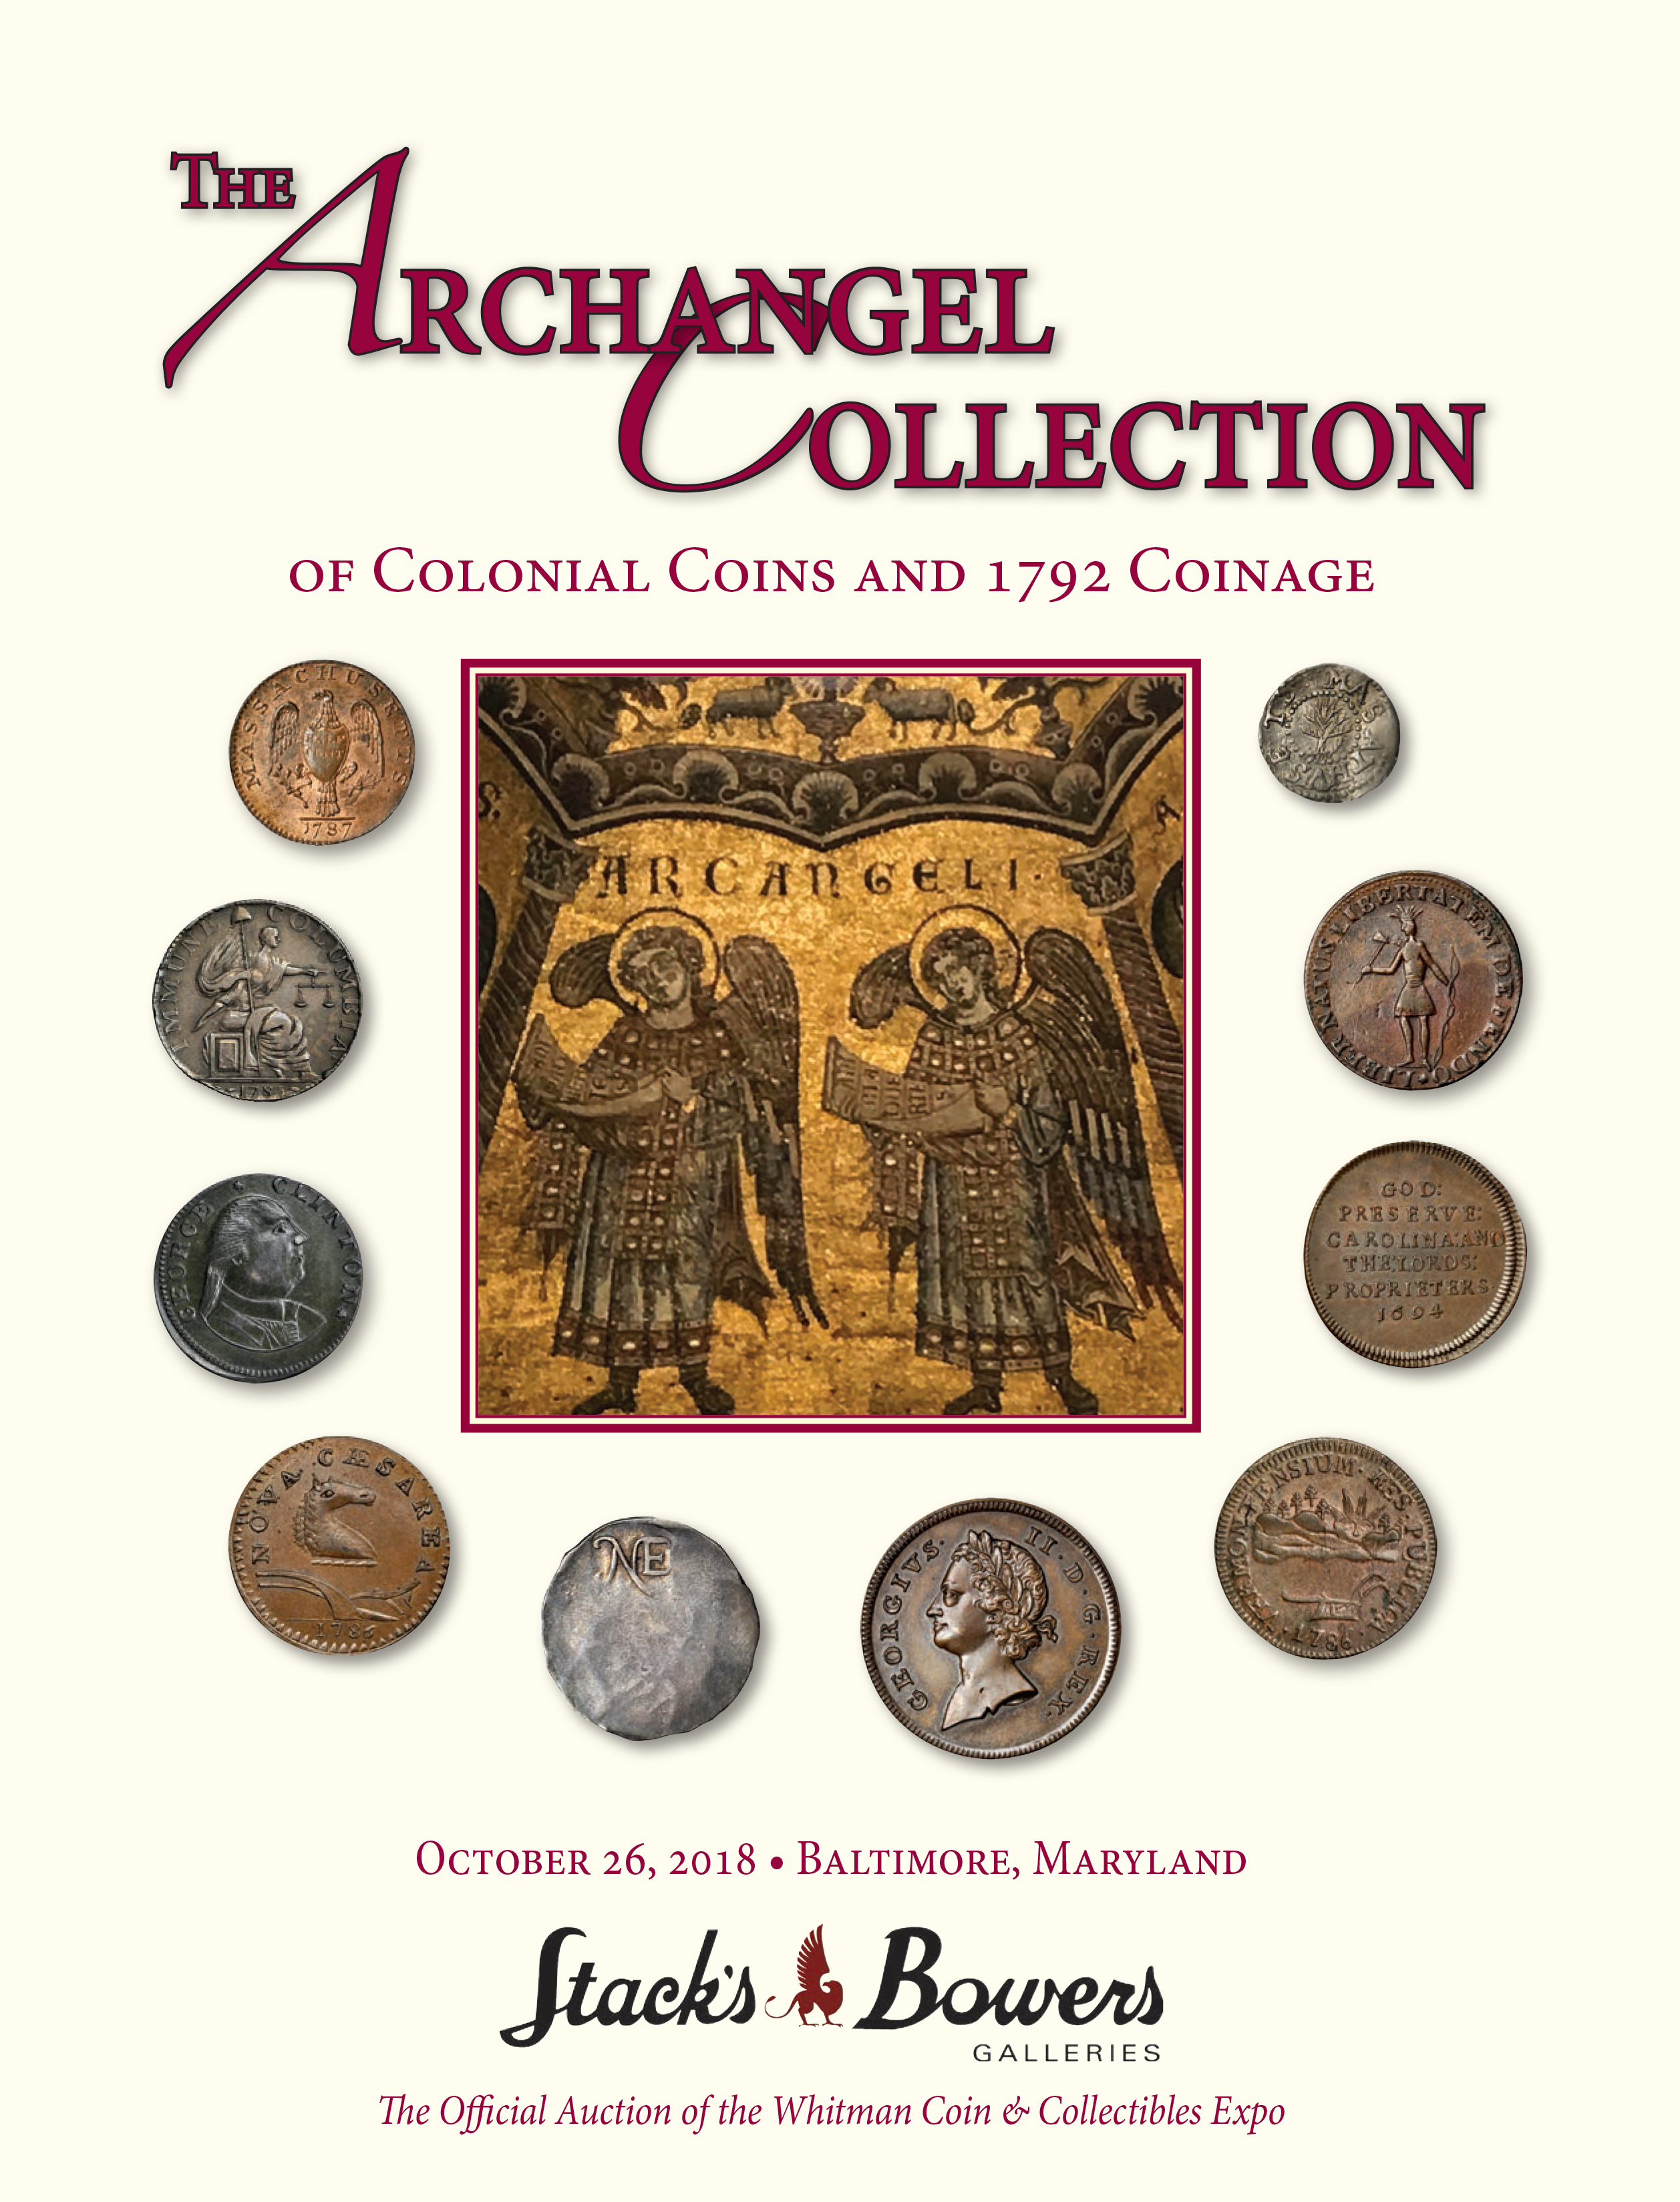 The Archangel Collection of Colonial Coins and 1792 Coinage